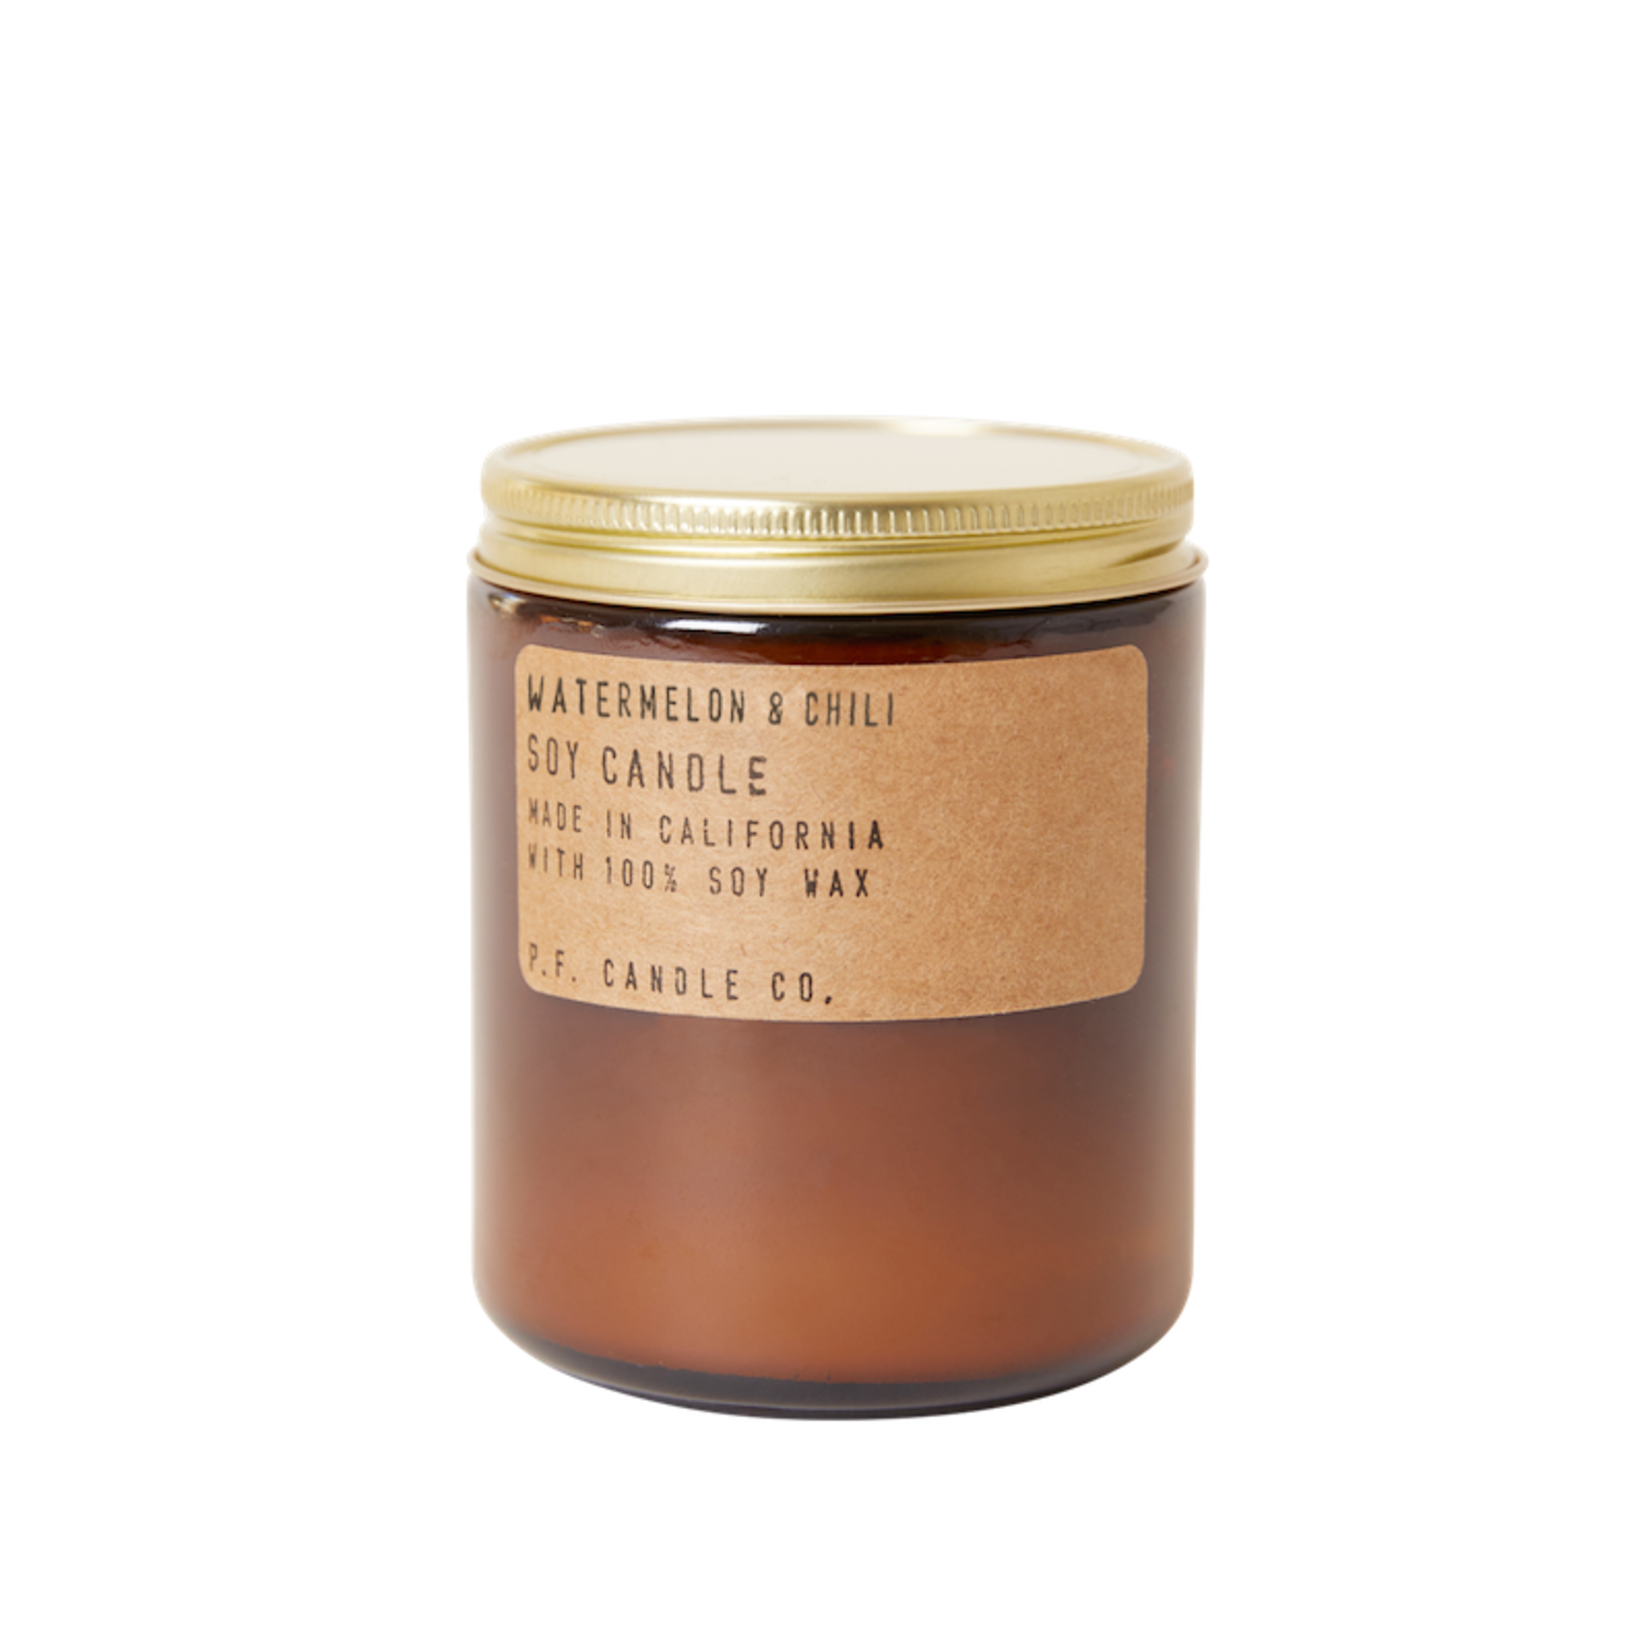 P.F. Candle Co. P.F. Soy Candle 7.2oz *NEW* Watermelon & Chili